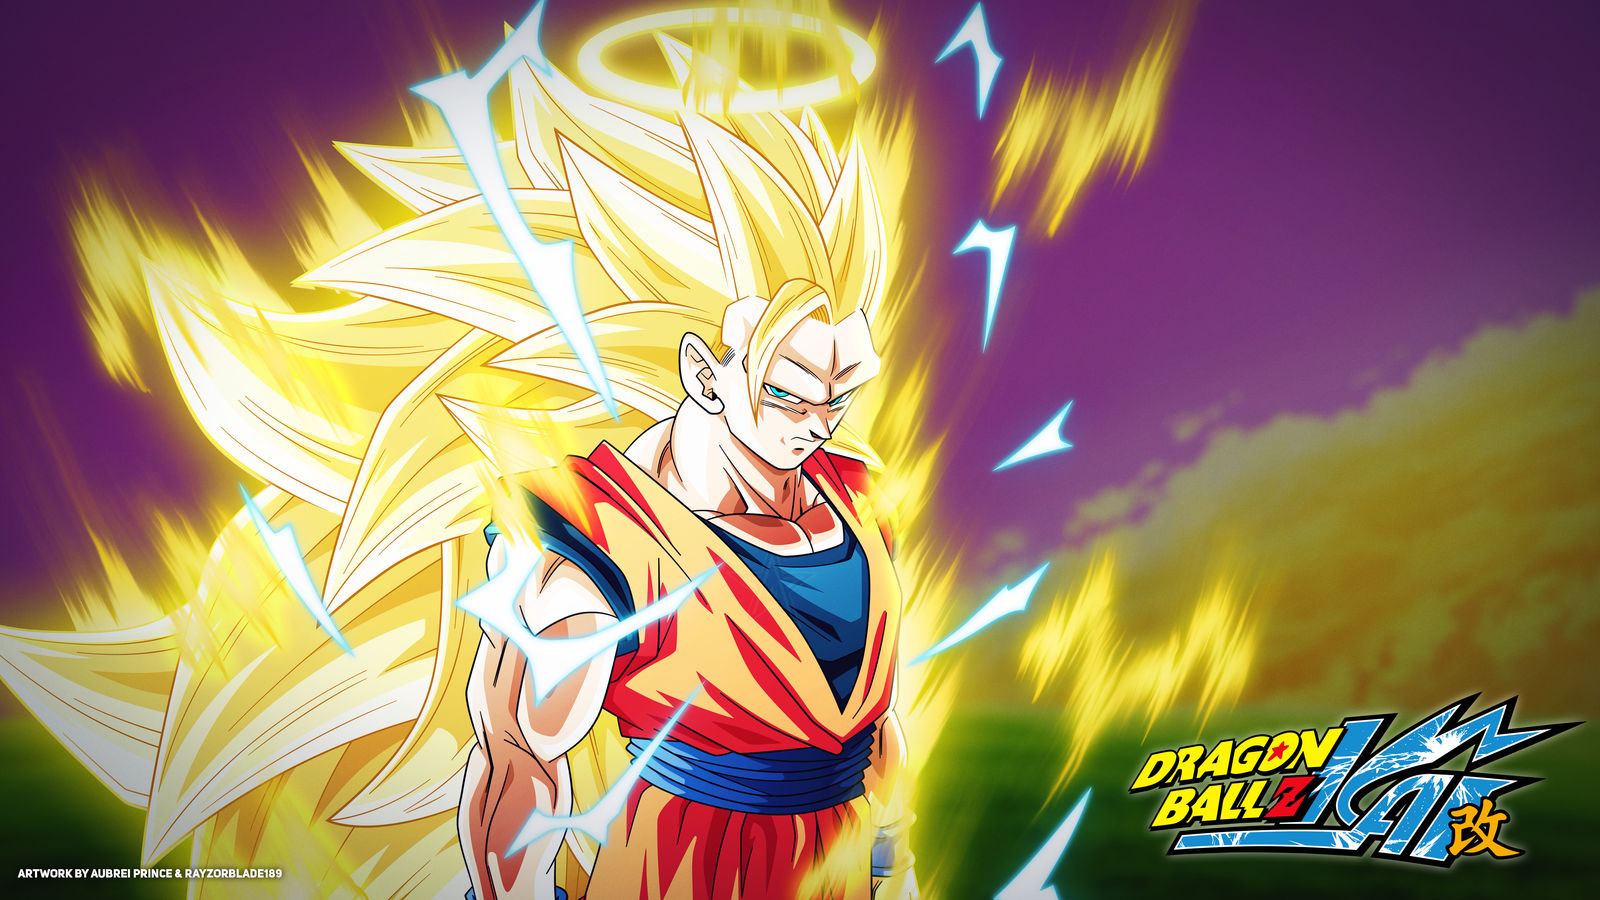 Dragonball Z Kai 4k Wallpaper By Aubreiprince On Deviantart